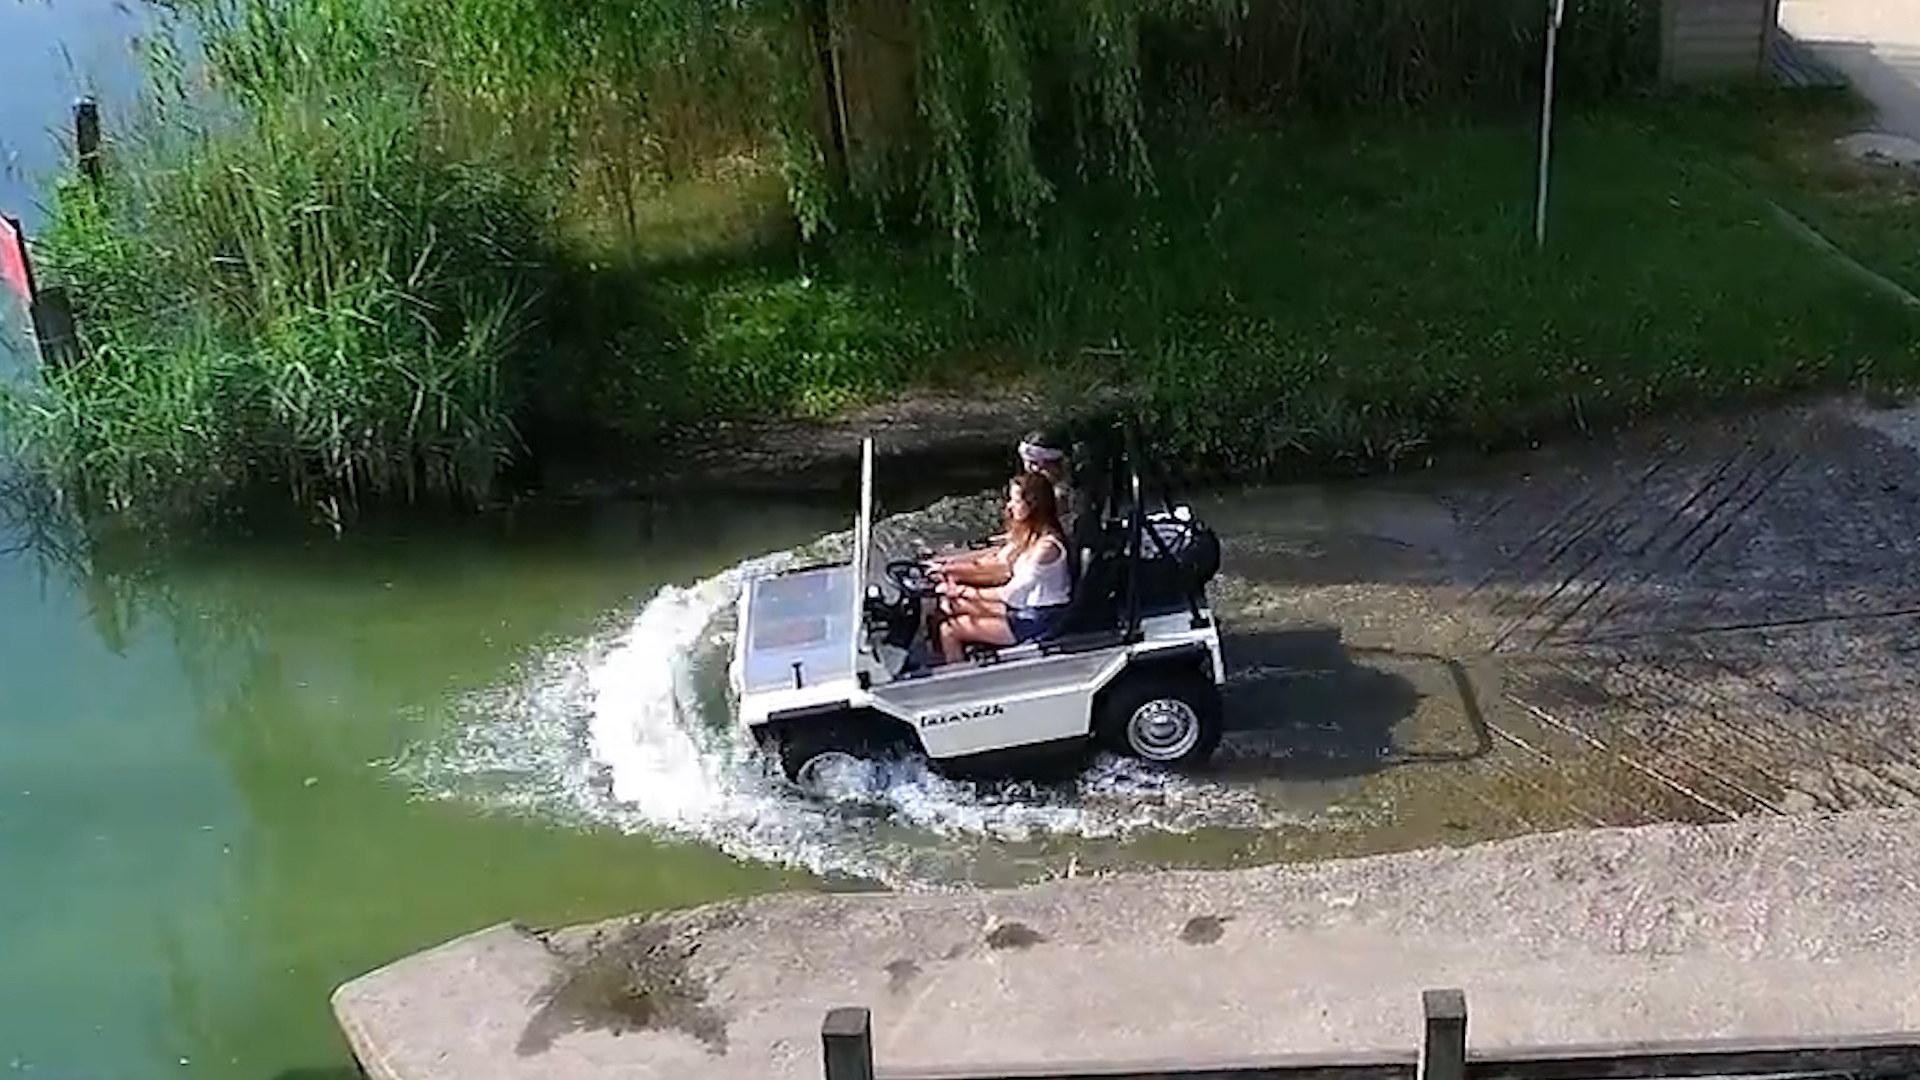 Made-to-order amphibious car lets you ride from land to water